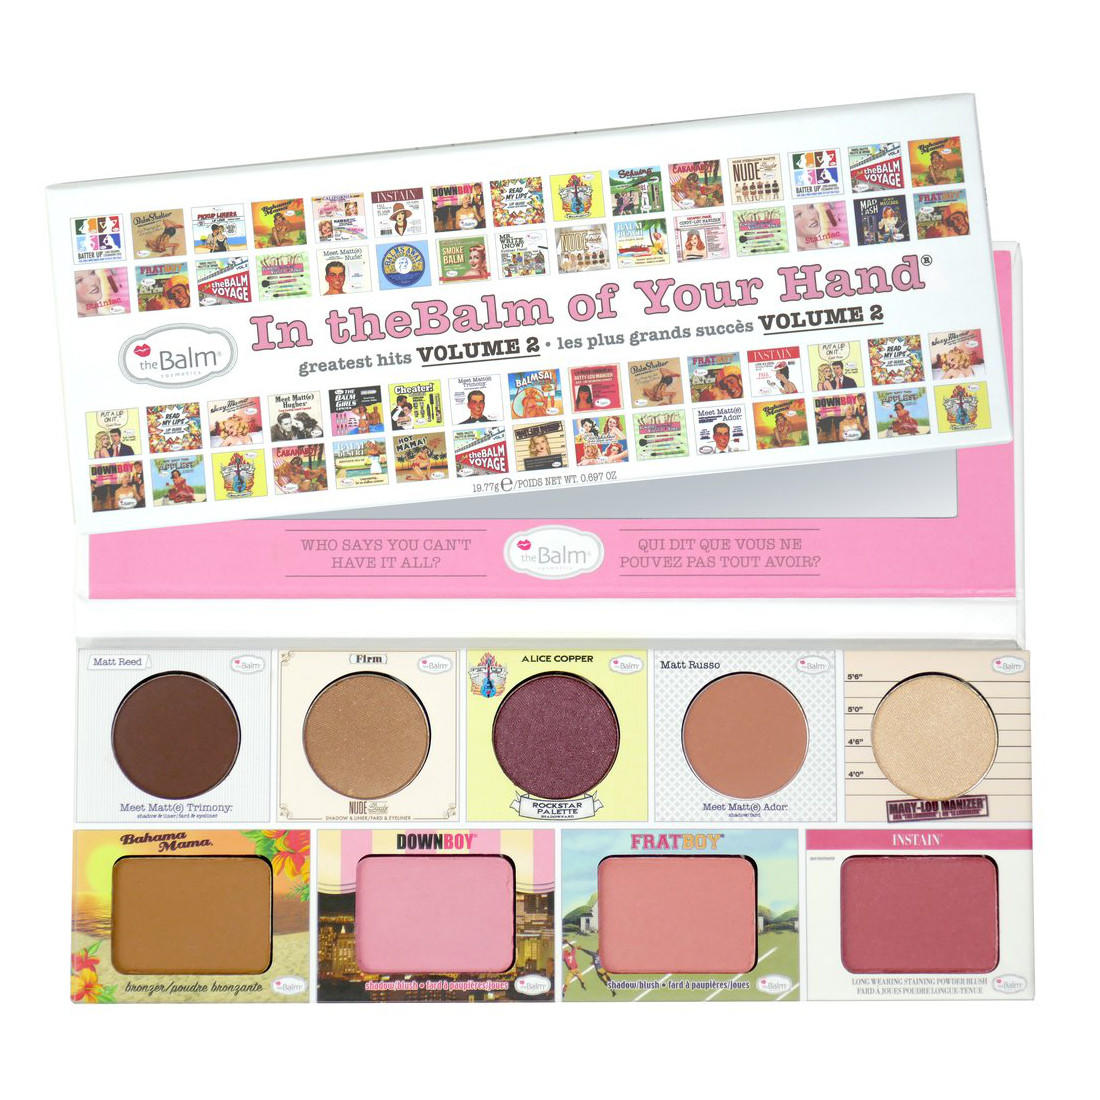 The Balm In The Balm Of Your Hand Greatest Hits Palette Vol 2.